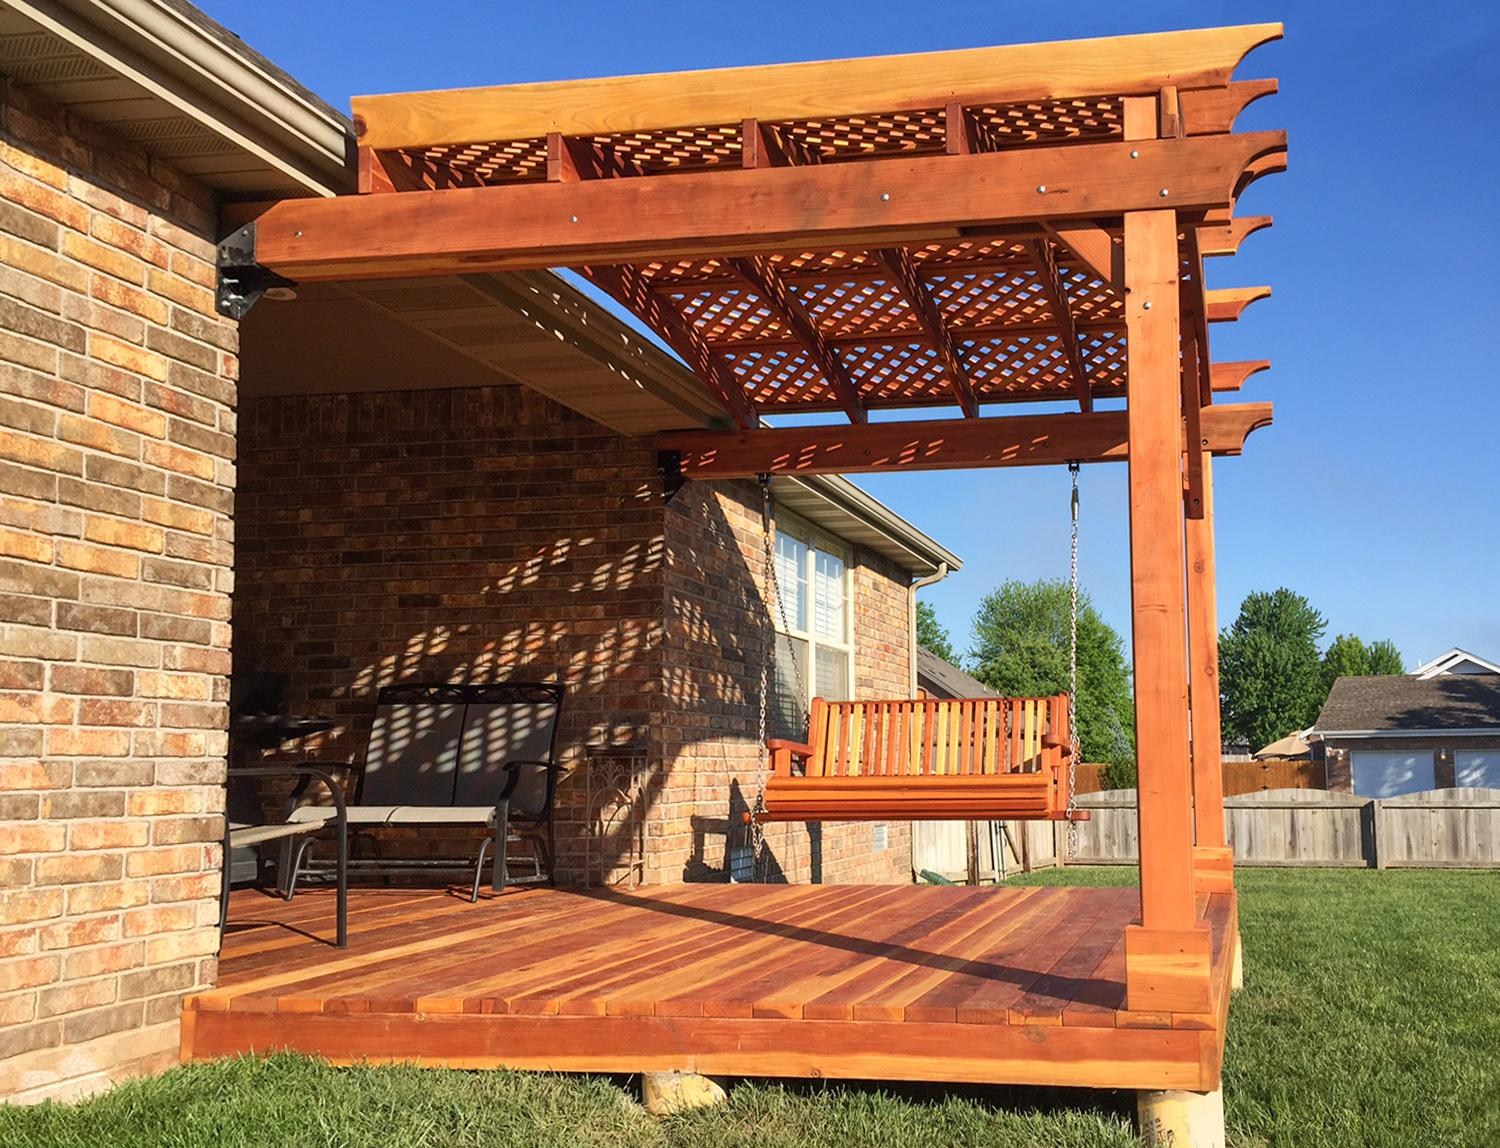 prefab pergola kit - Pros And Cons Of A Prefab Pergola Kit Vs. Building Your Own